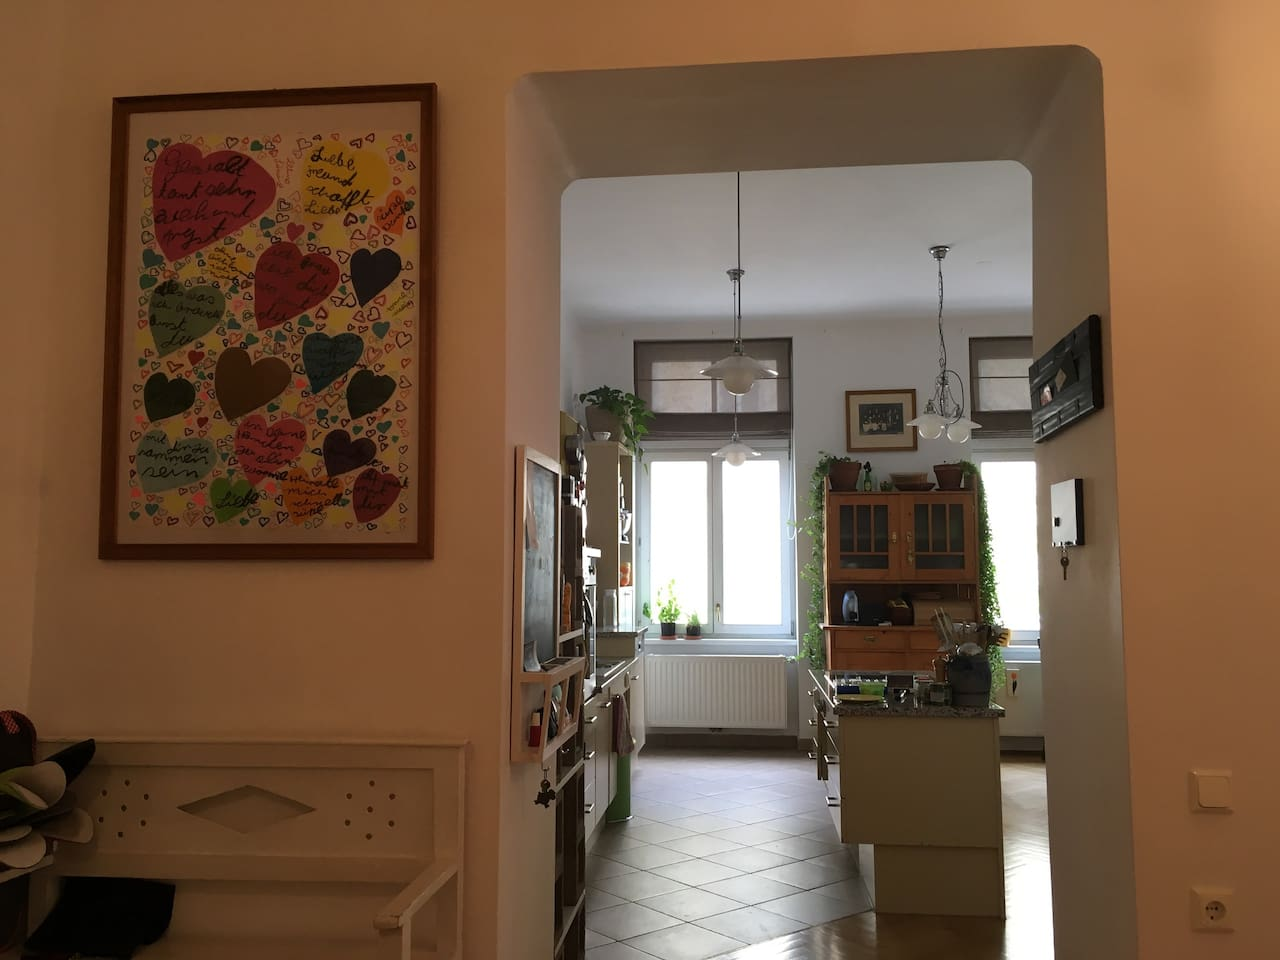 when you enter the appartement ~ view from hall into the kitchen